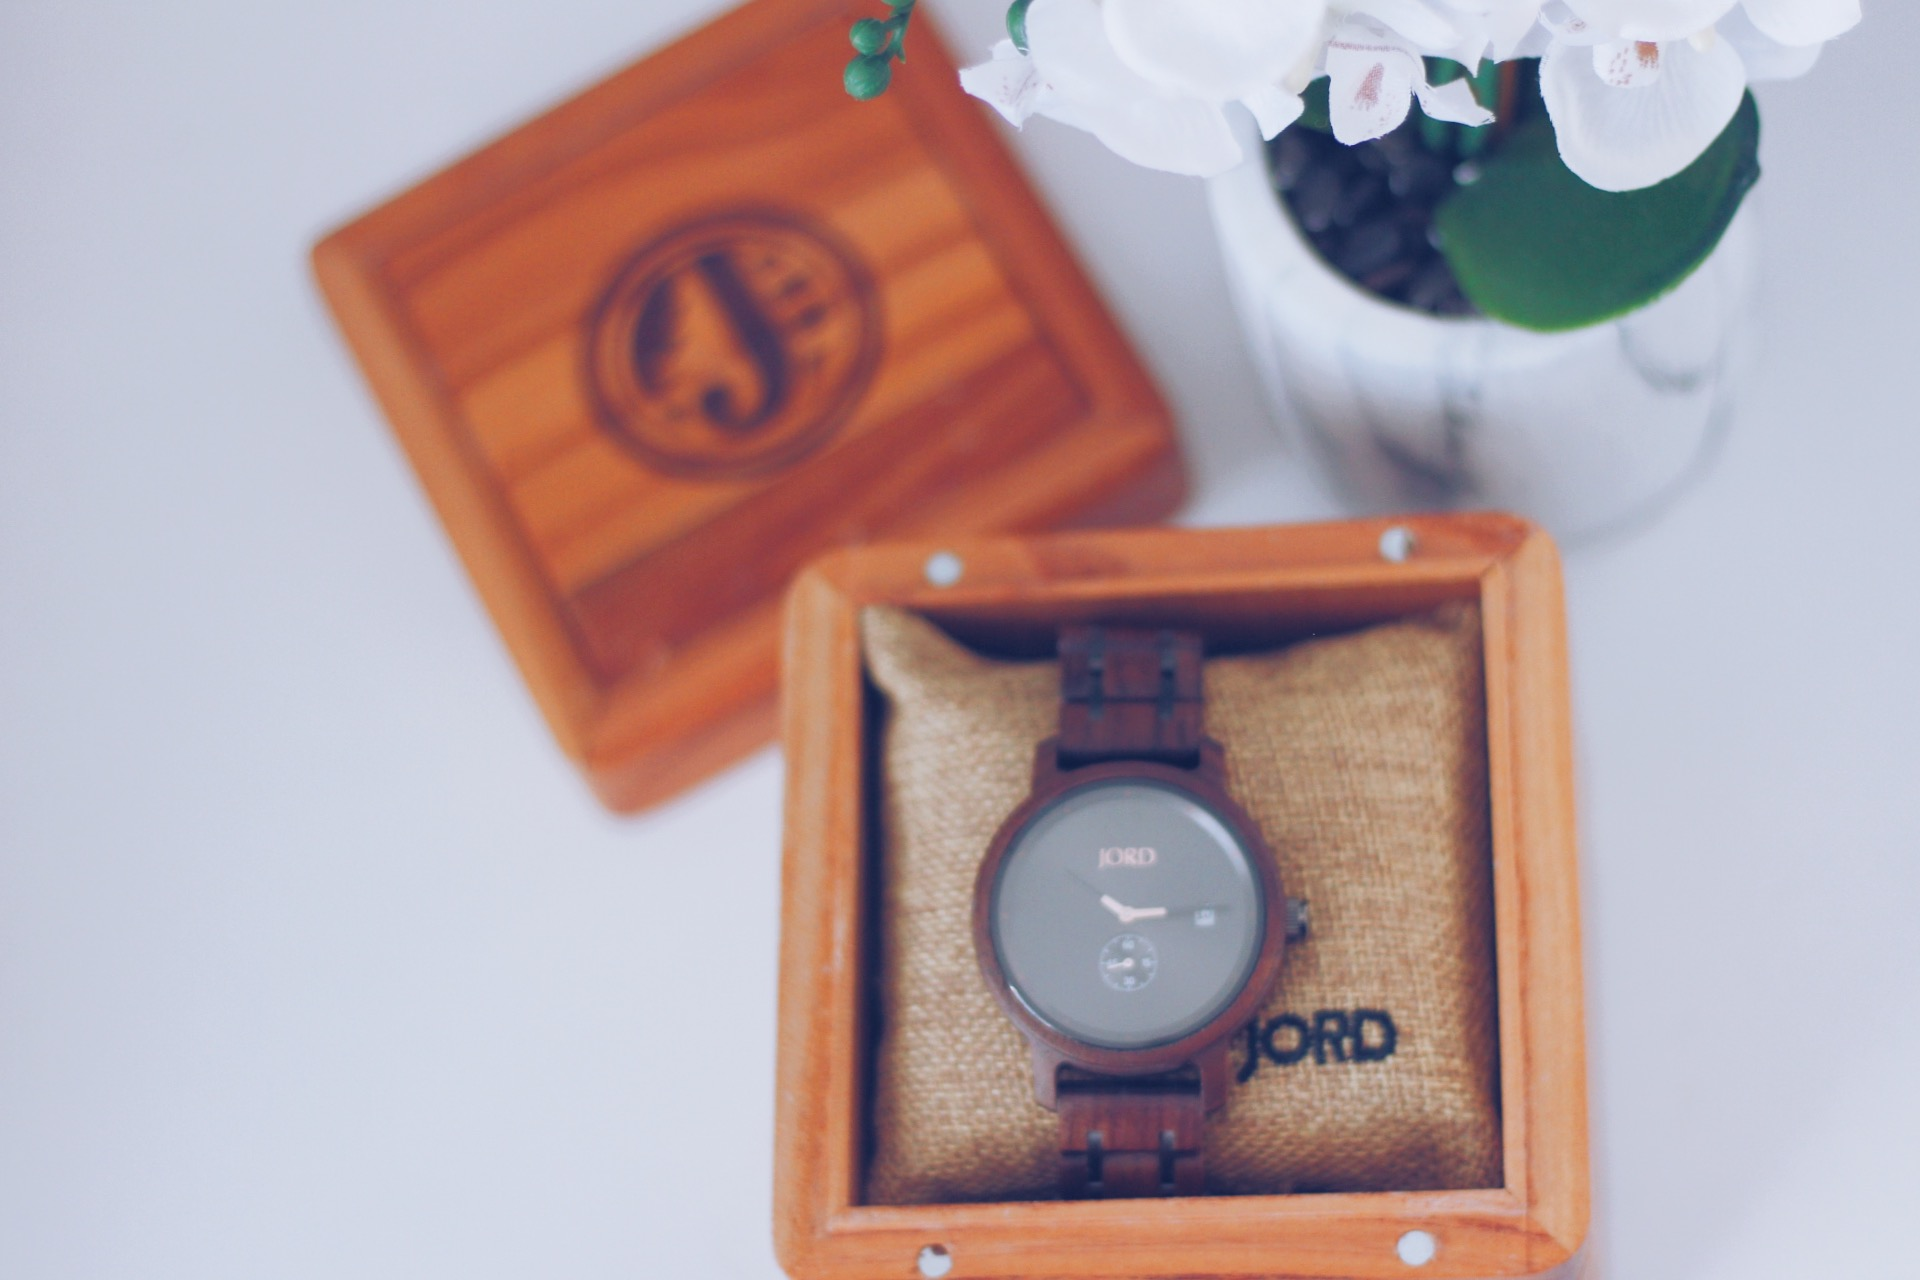 Hyde Series JORD WATCH